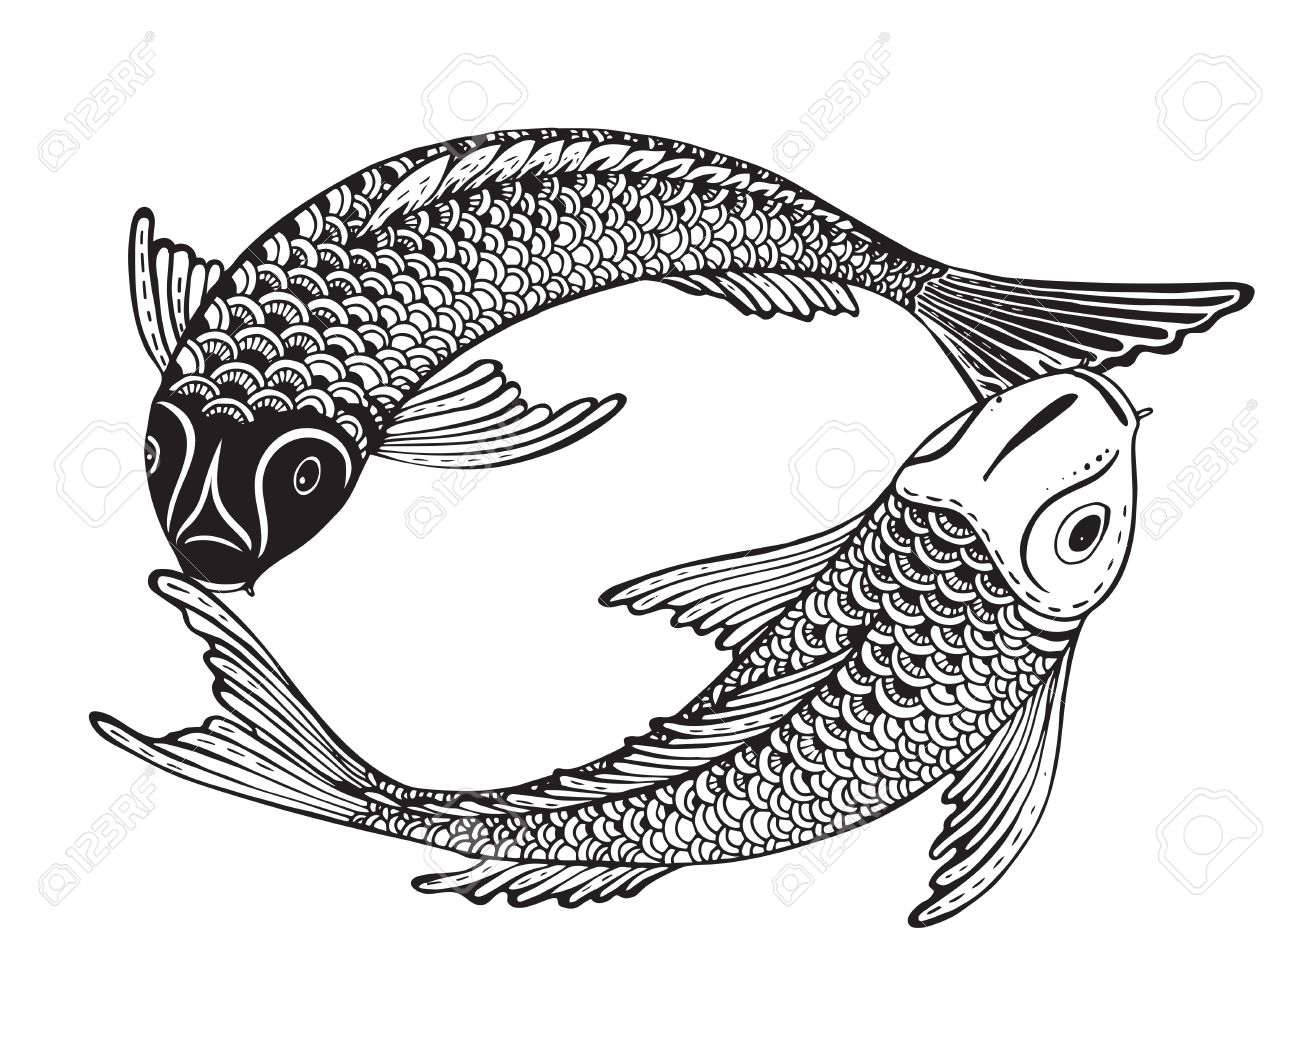 Hand Drawn Vector Illustration Of Two Koi Fishes (Japanese Carp ...